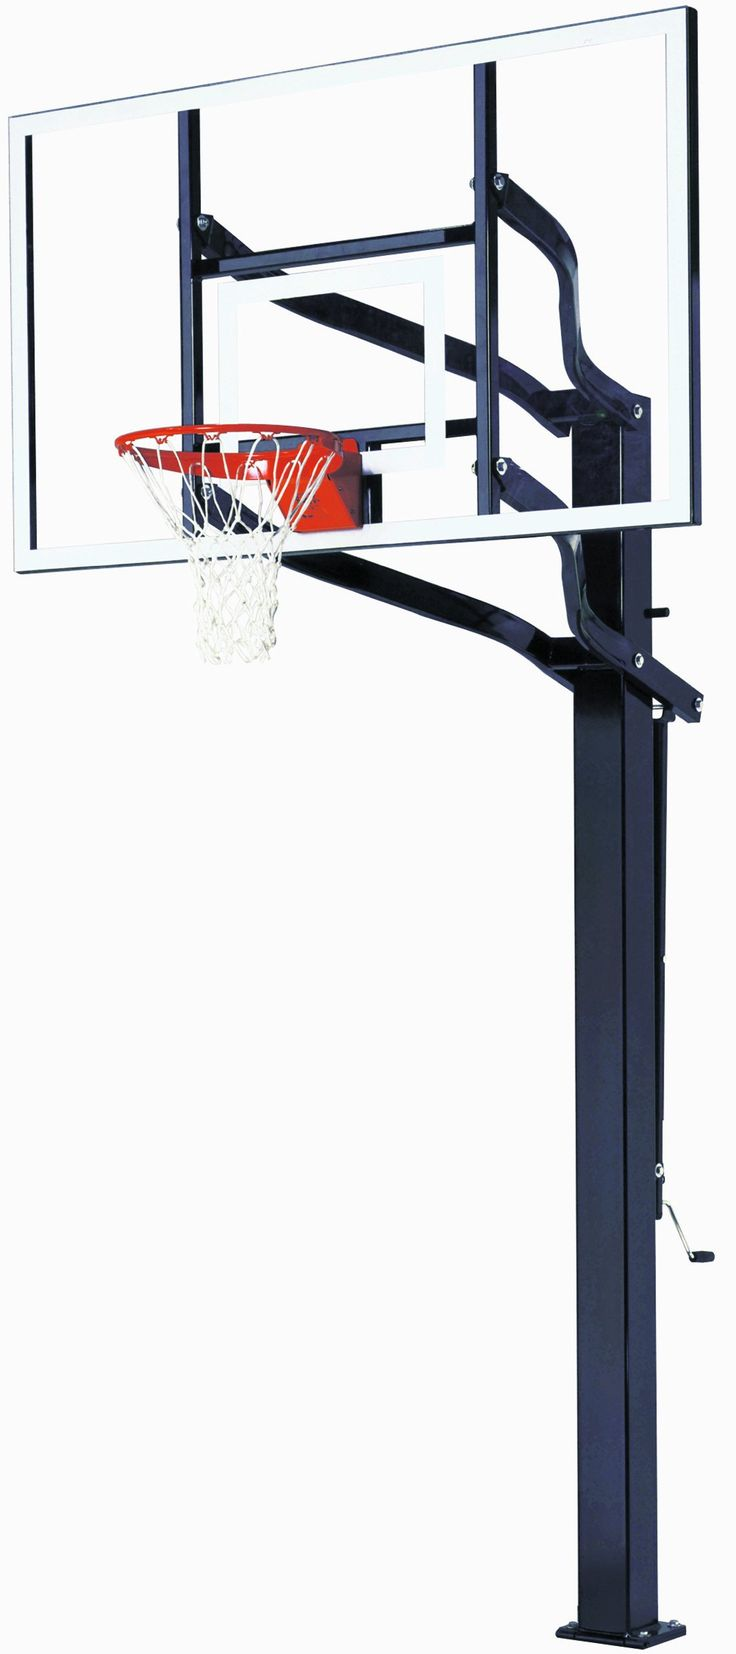 Goalsetter X672 In Ground Adjustable Basketball System with 72-Inch Glass Backboard and Flex Rim